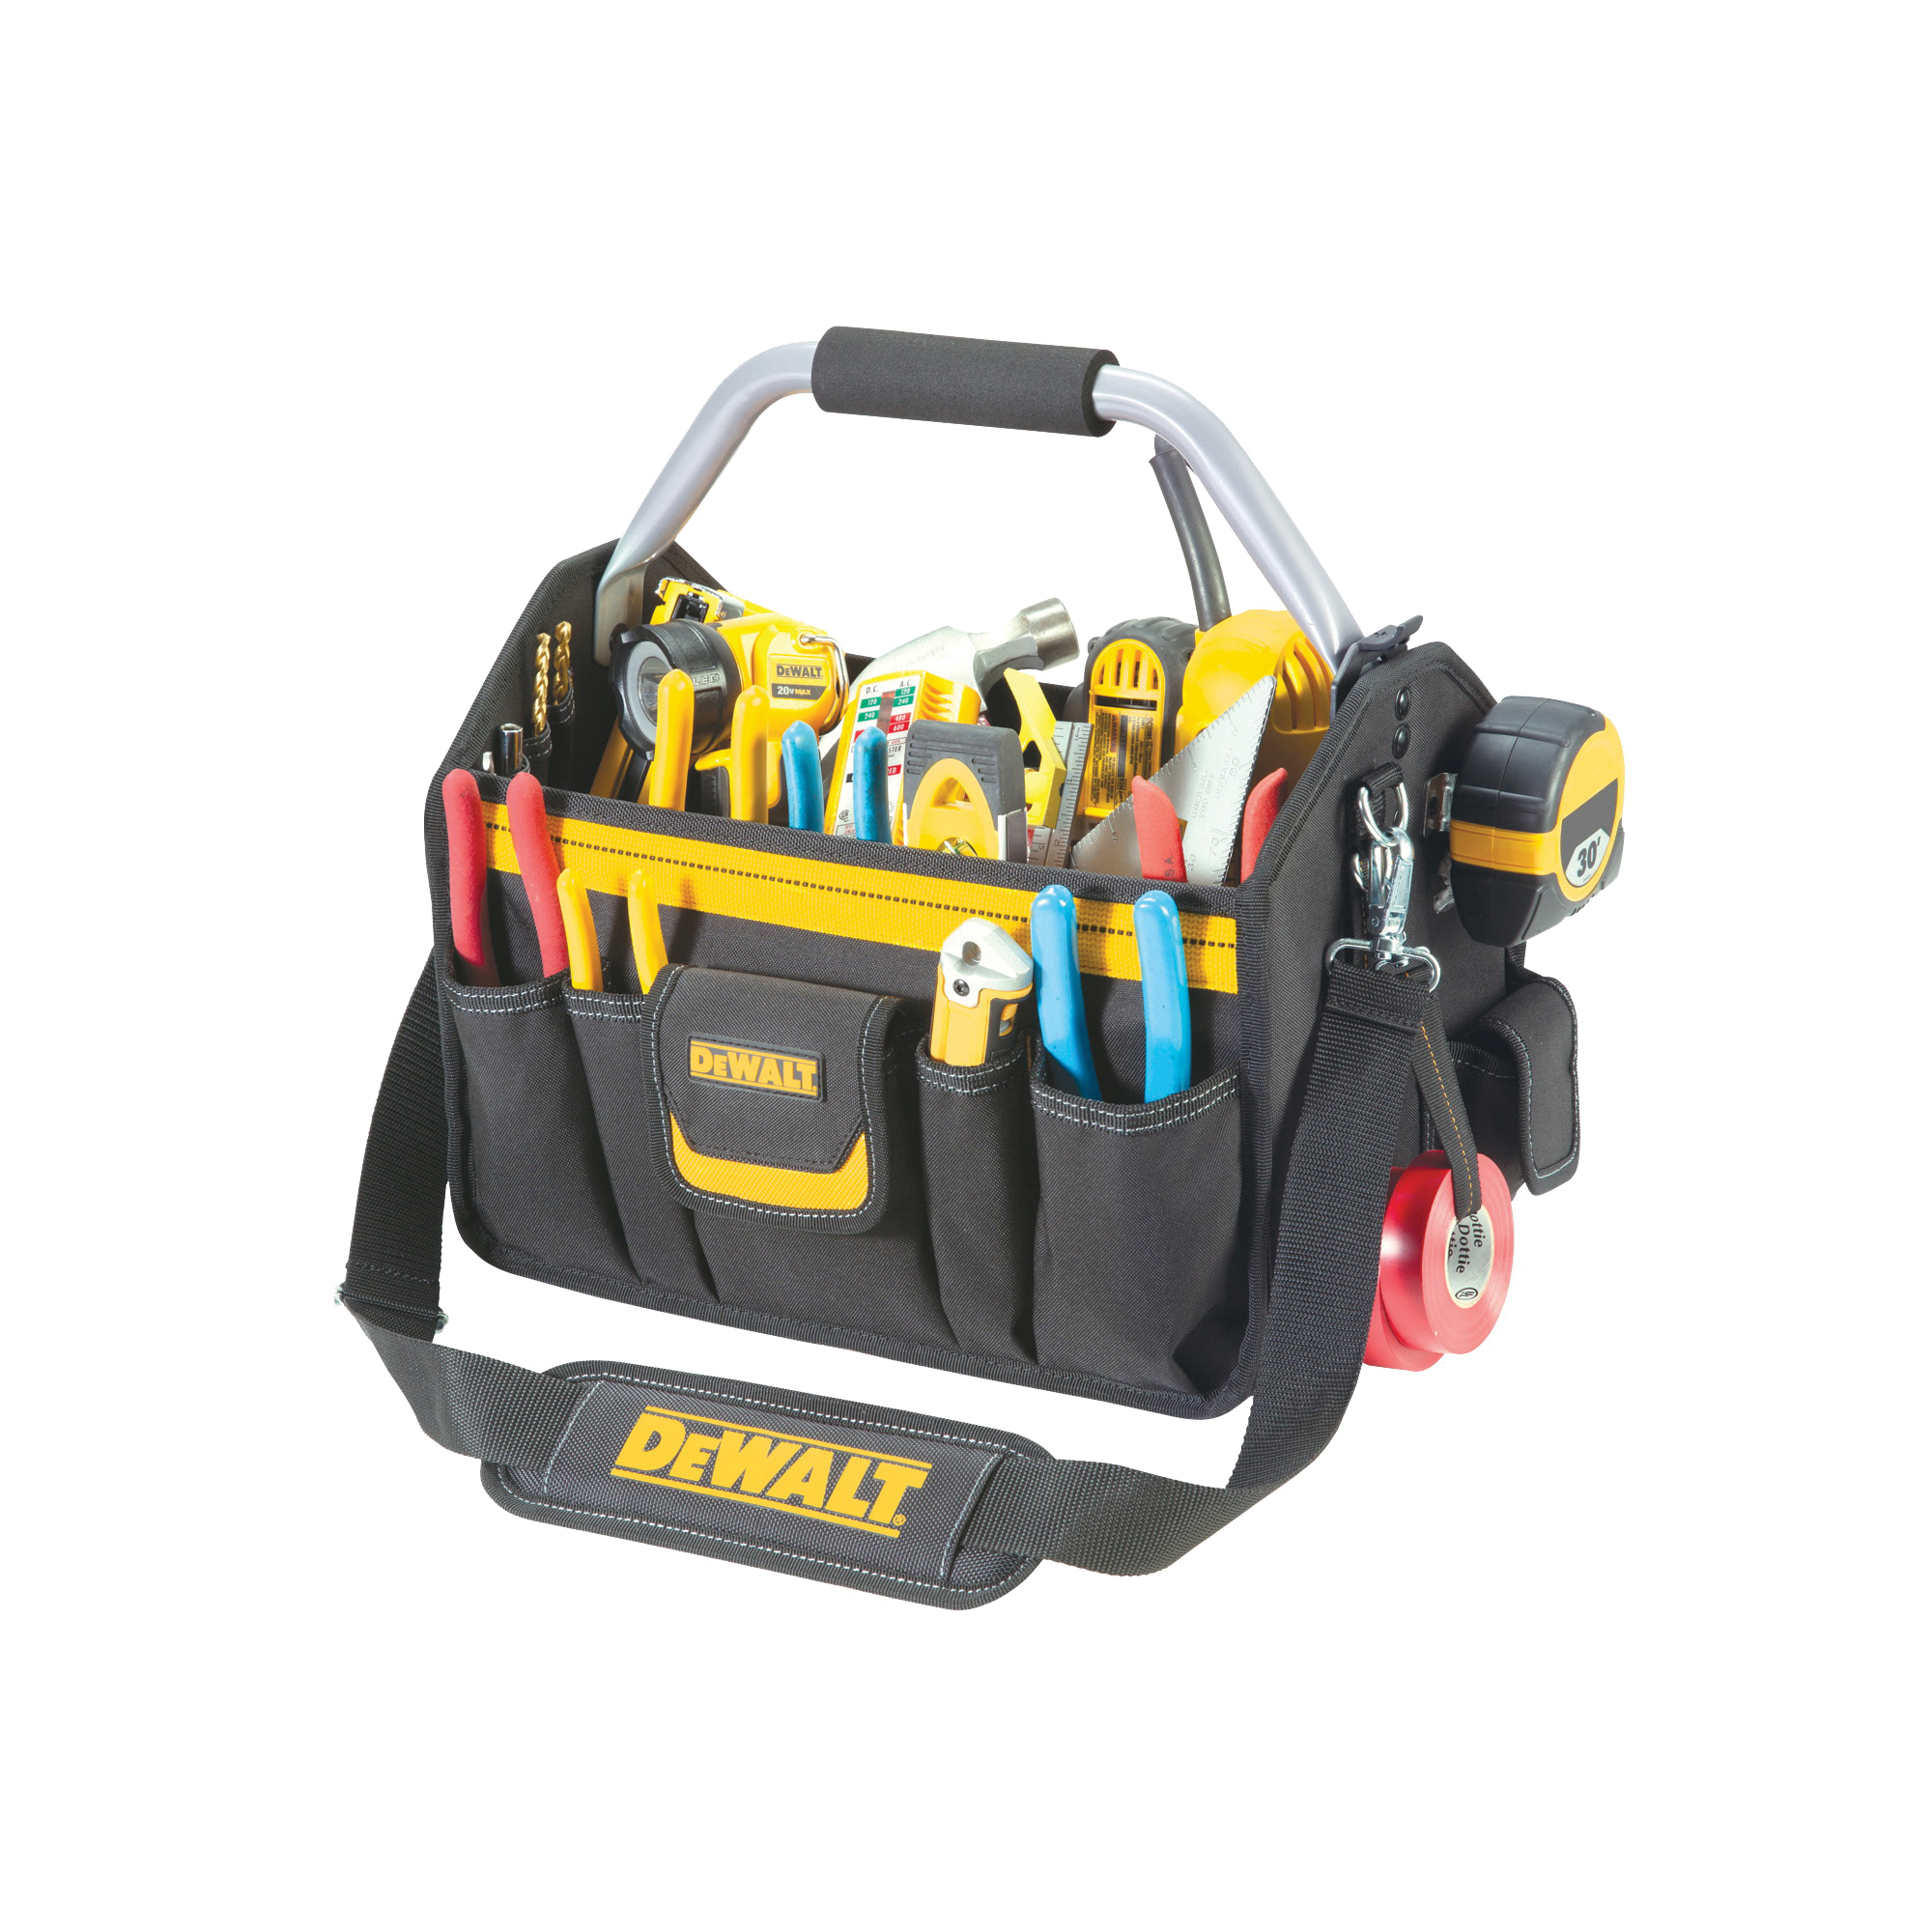 Picture of CLC DG5587 Tool Carrier, 14 in W, 8-1/2 in D, 14 in H, 23 -Pocket, Ballistic Poly Fabric, Black/Yellow